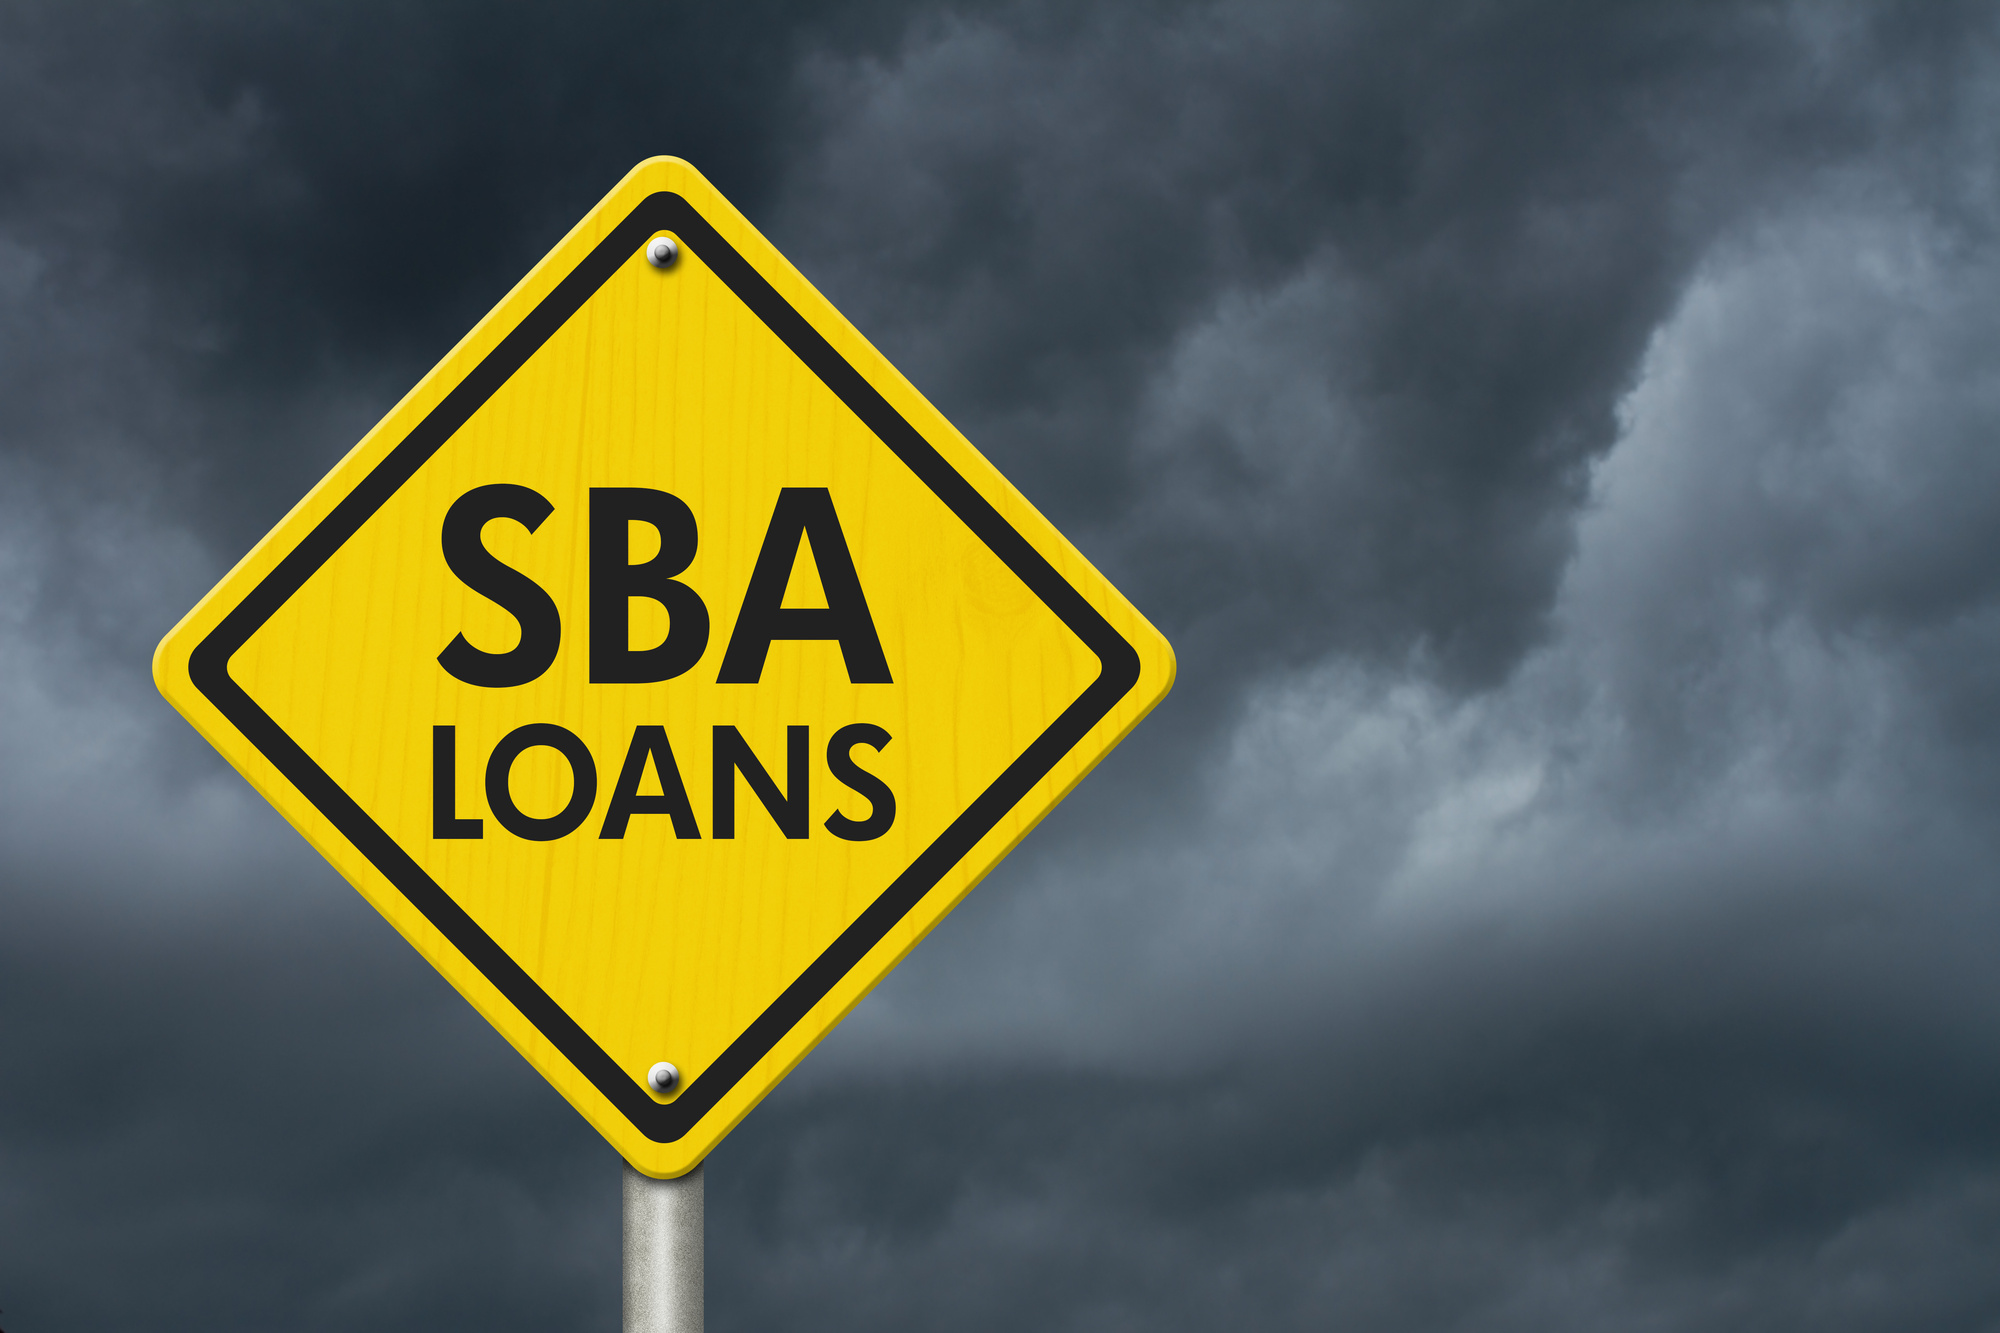 SBA CARES Act: SBA OHA Appeals Litigation Regarding Paycheck Protection Program (PPP) Loan Review Decisions